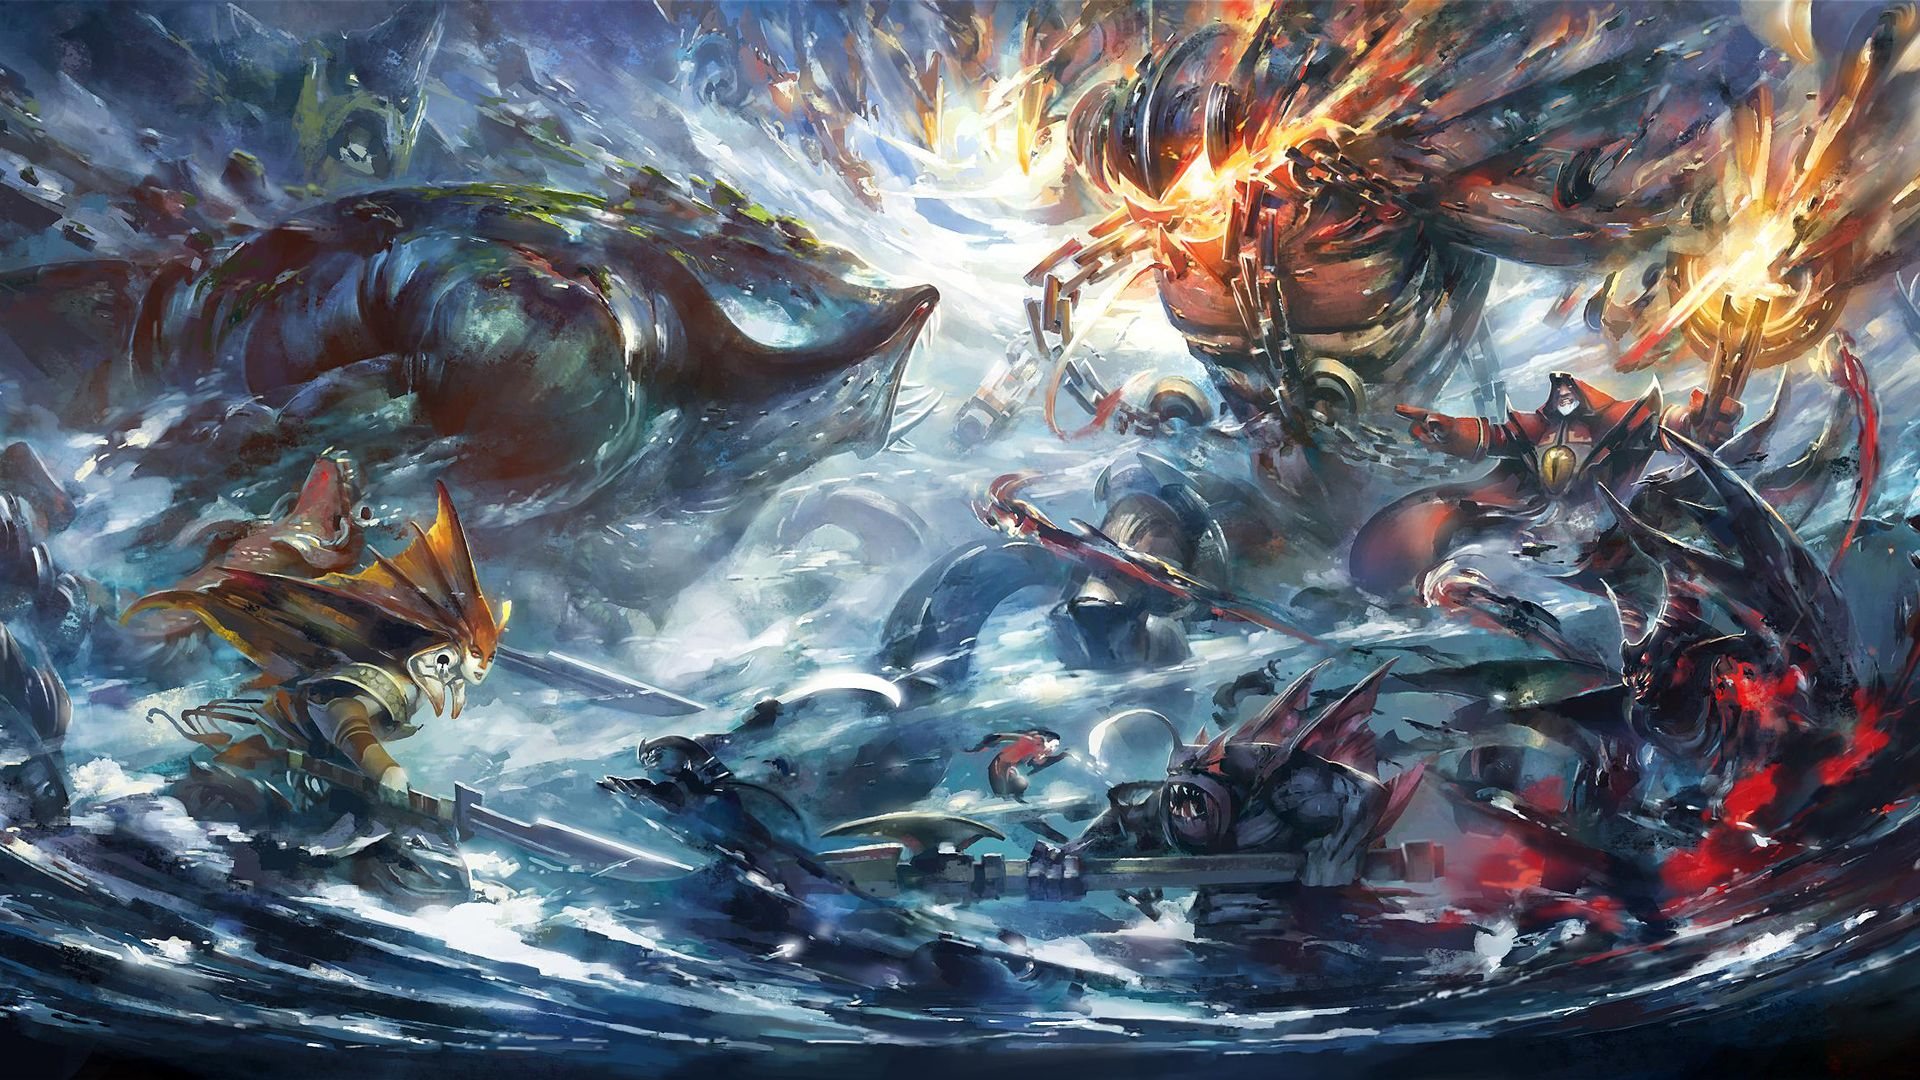 Dota 2 Heroes Clash Art Battle High Definition Wallpaper Dota 2 Wallpaper Dota 2 Art Wallpaper